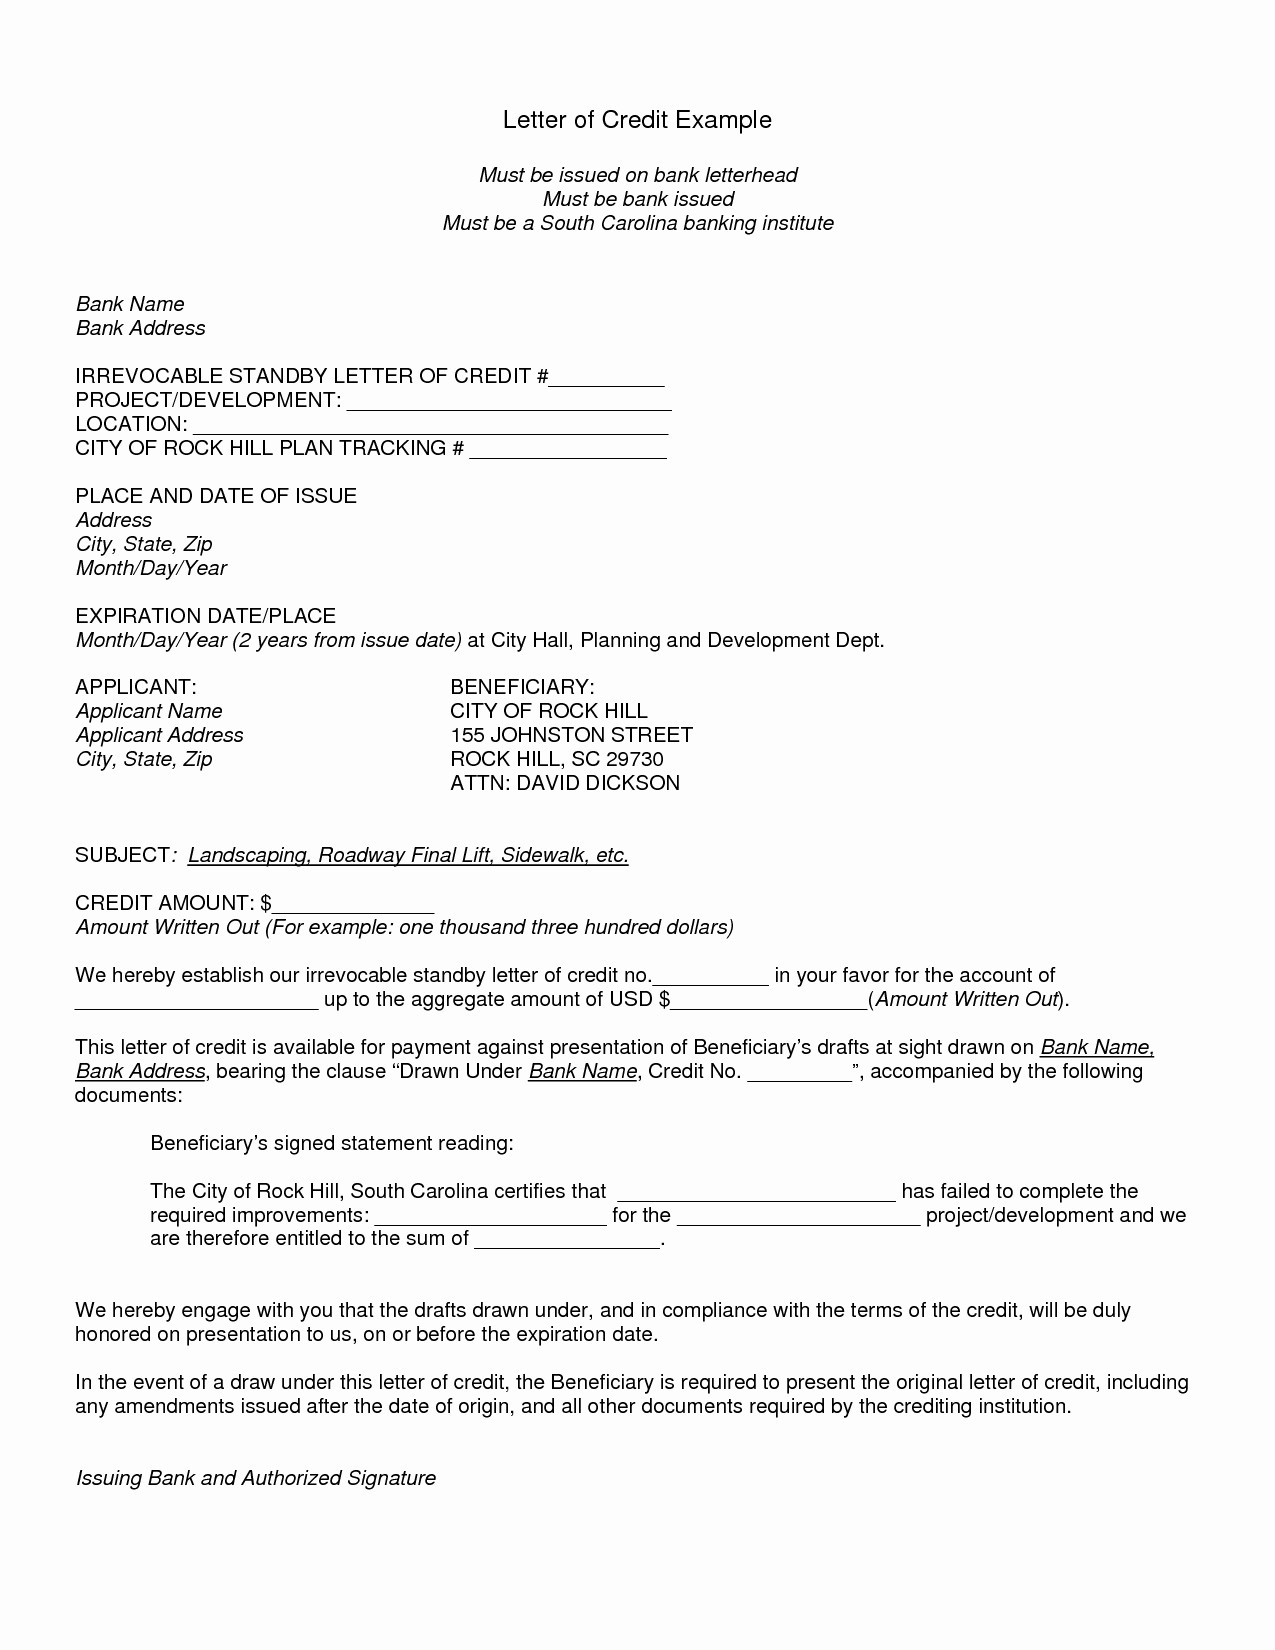 beneficiary letter template Collection-sample of letter of credit 8-f